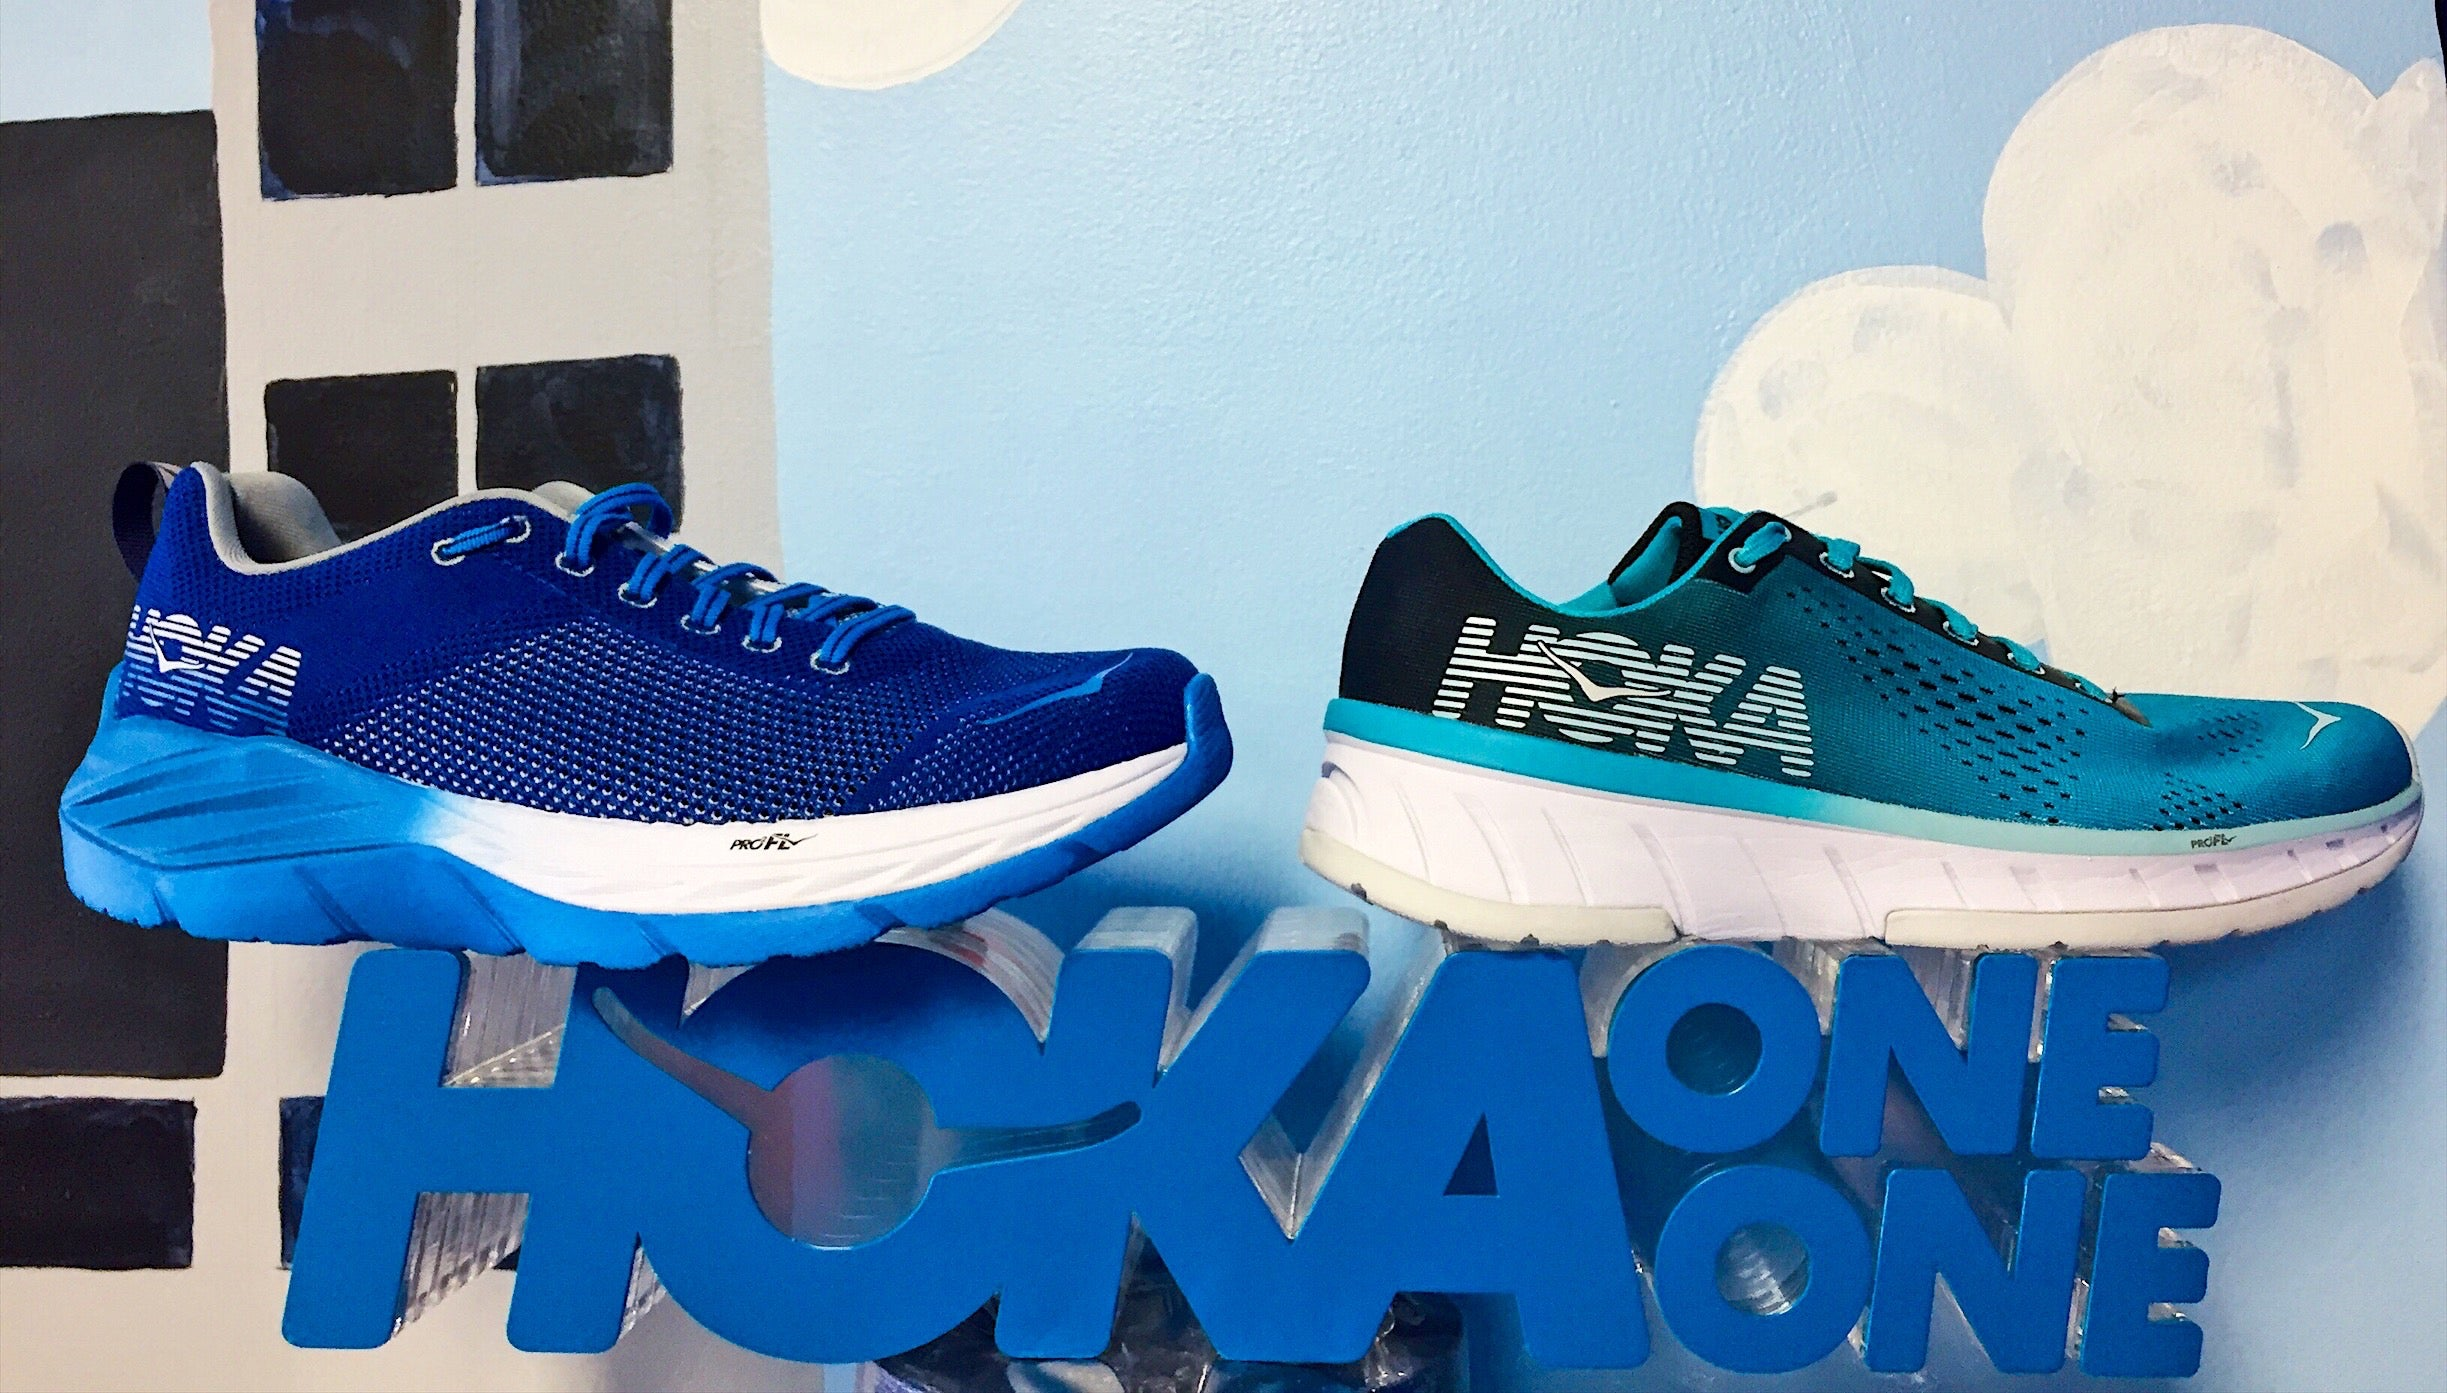 outlet store 2db5e c4619 HOKA ONE ONE Fly Collection: Cavu and Mach – Columbus ...